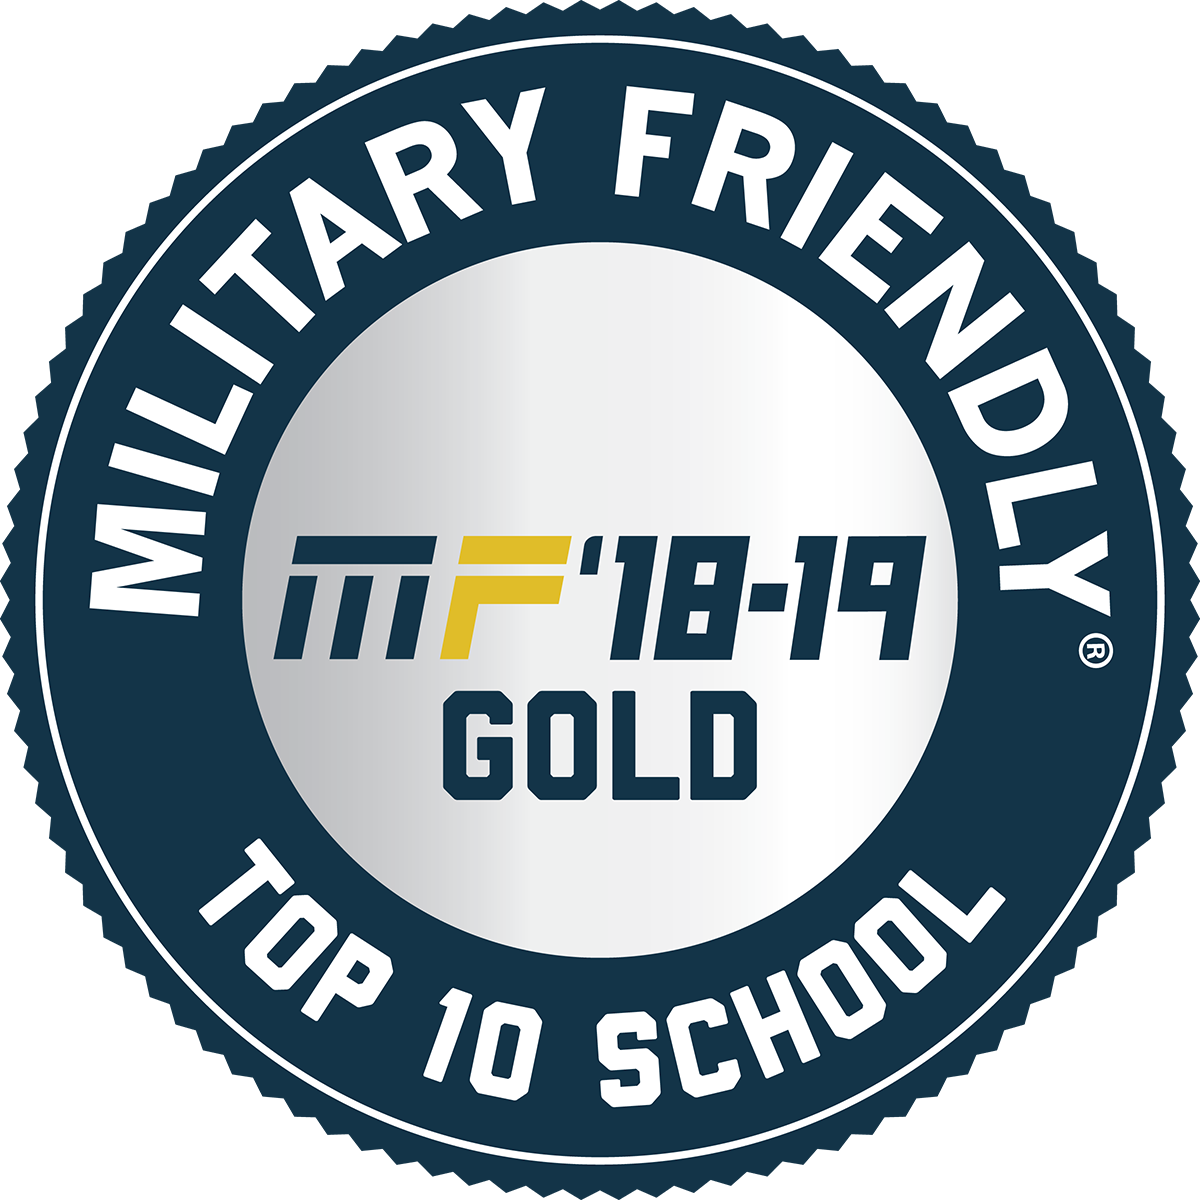 Military Friendly gold logo